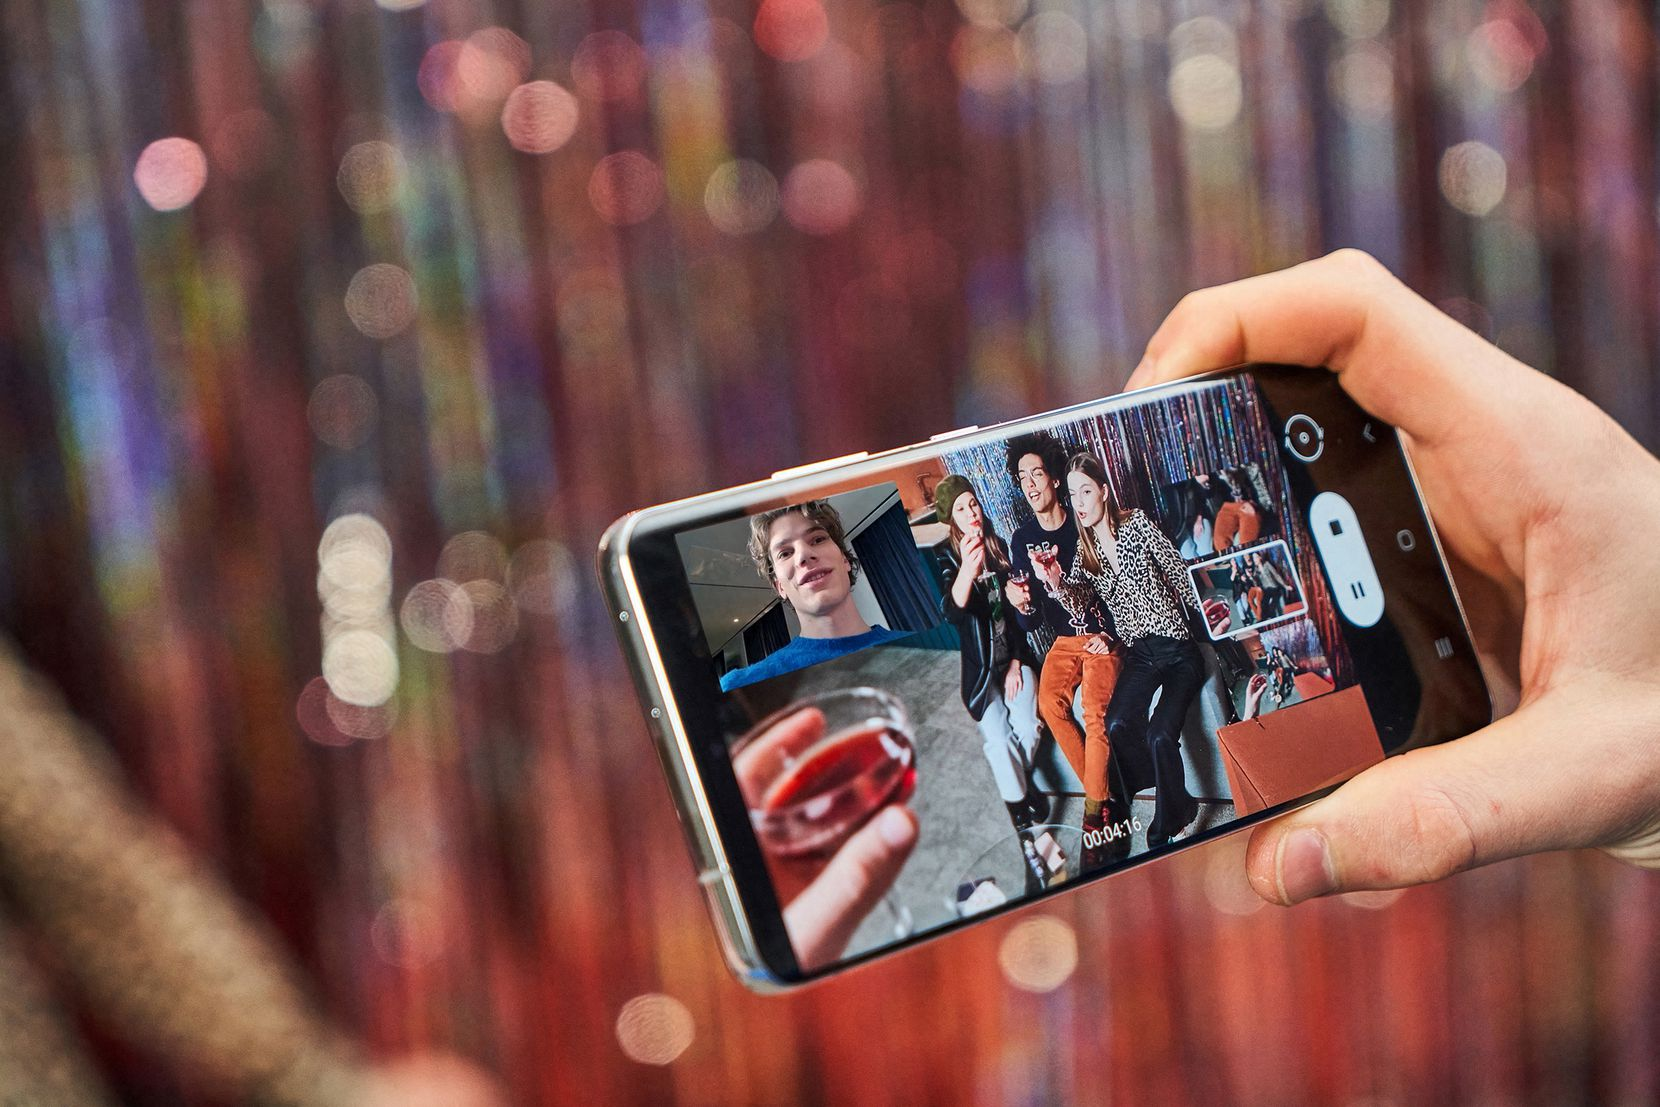 Director mode on the Samsung Galaxy S21 Ultra 5G shows three camera views and lets you switch between them while you are shooting video.